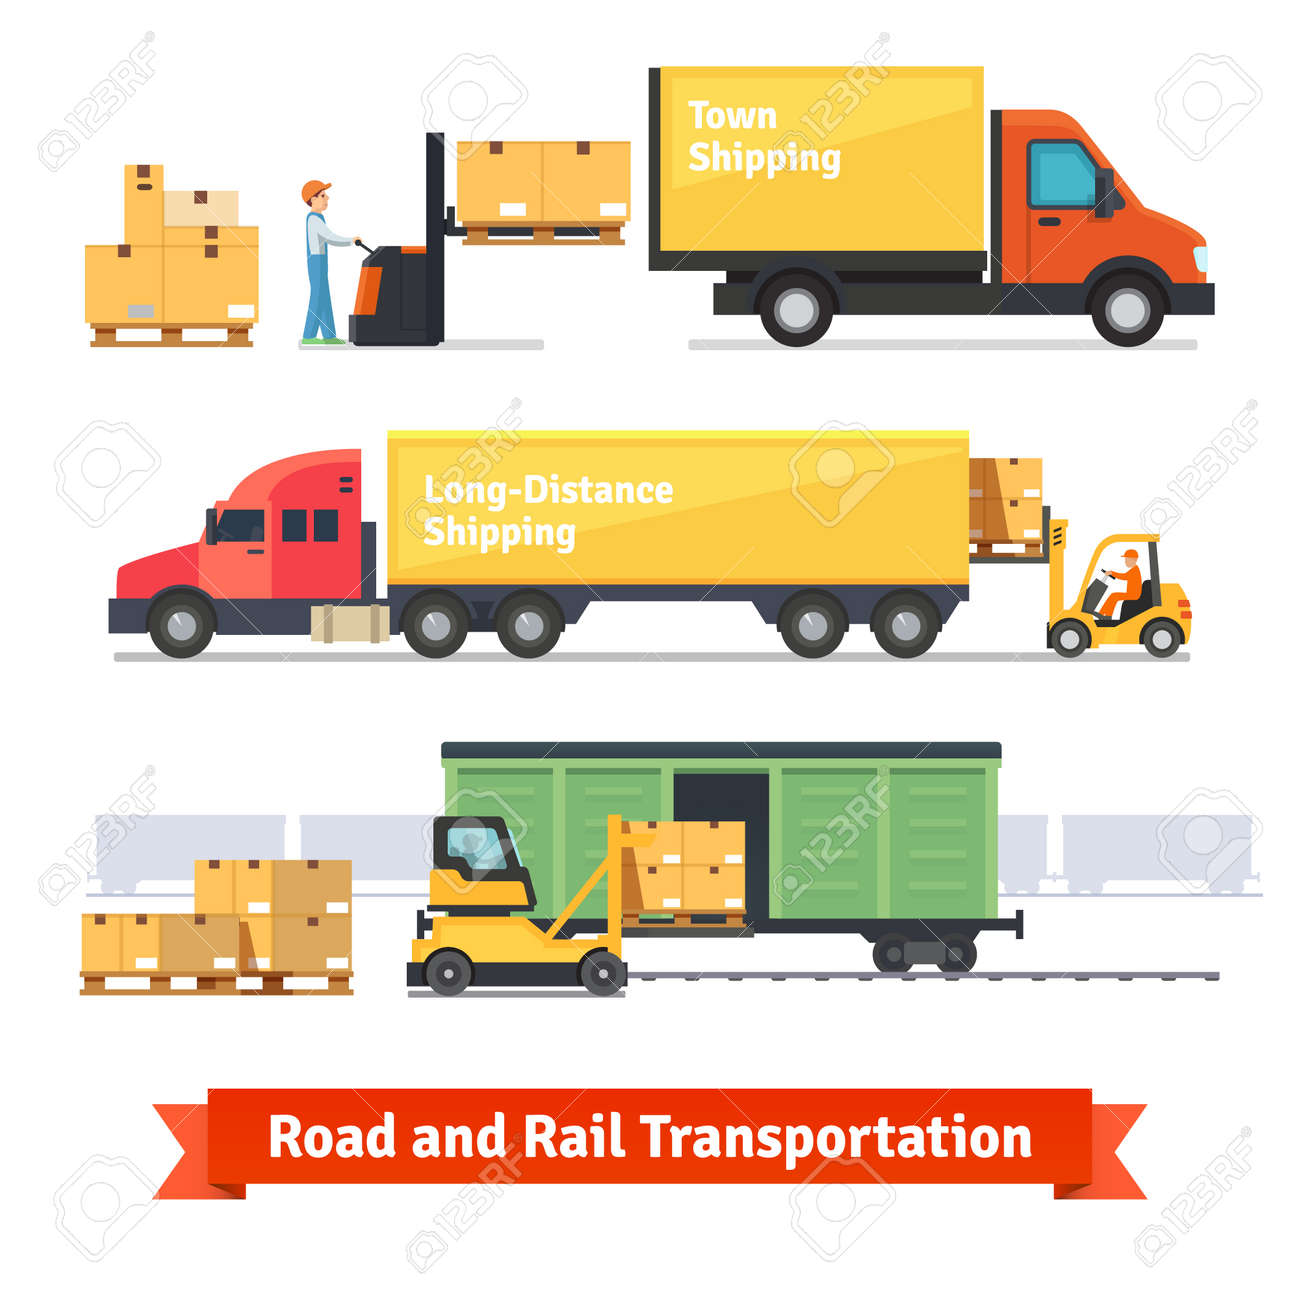 Cargo transportation by road and train  Workers loading and unloading